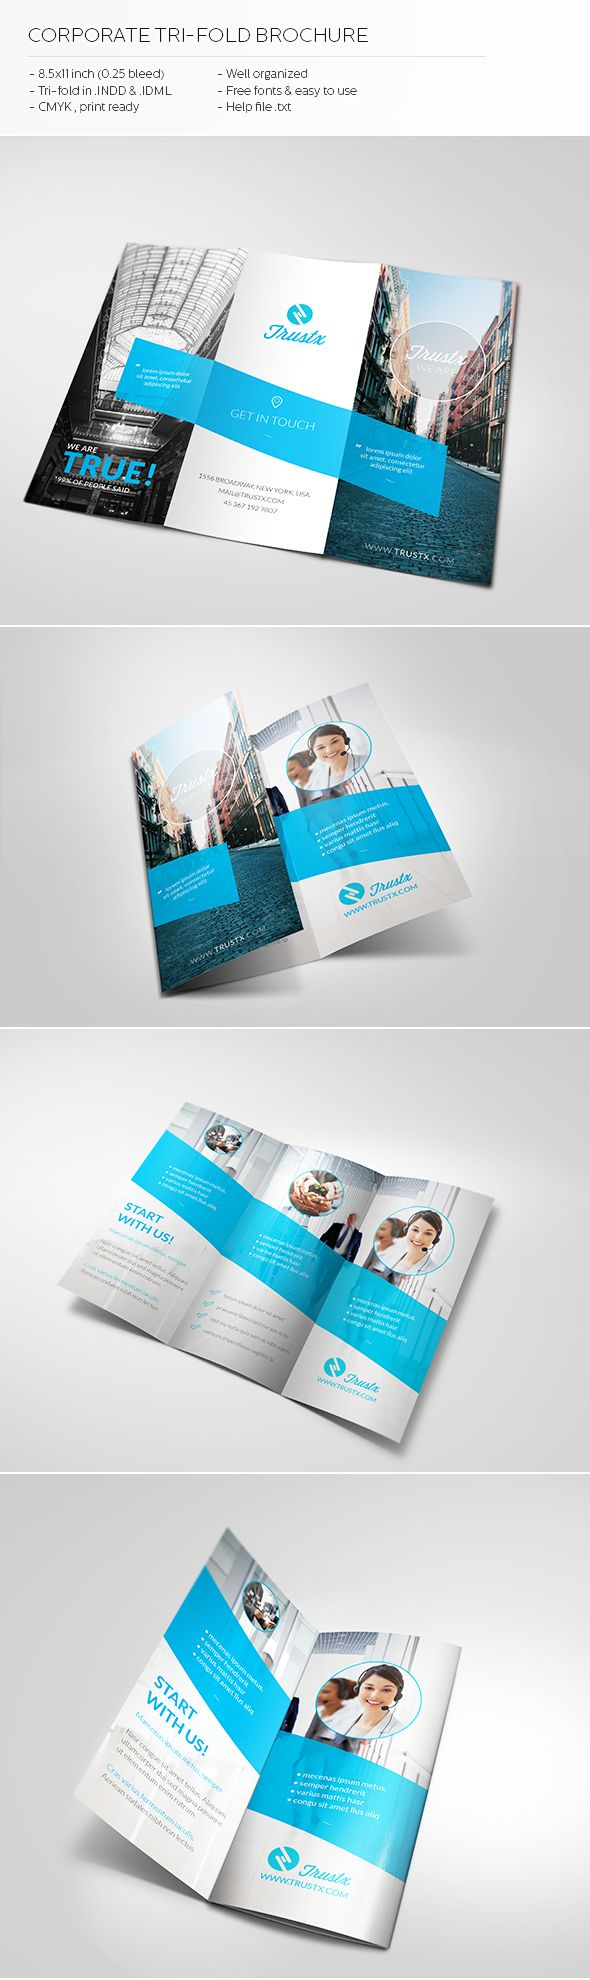 Trustx - Corporate Tri-fold Brochure by Realstar , via Behance